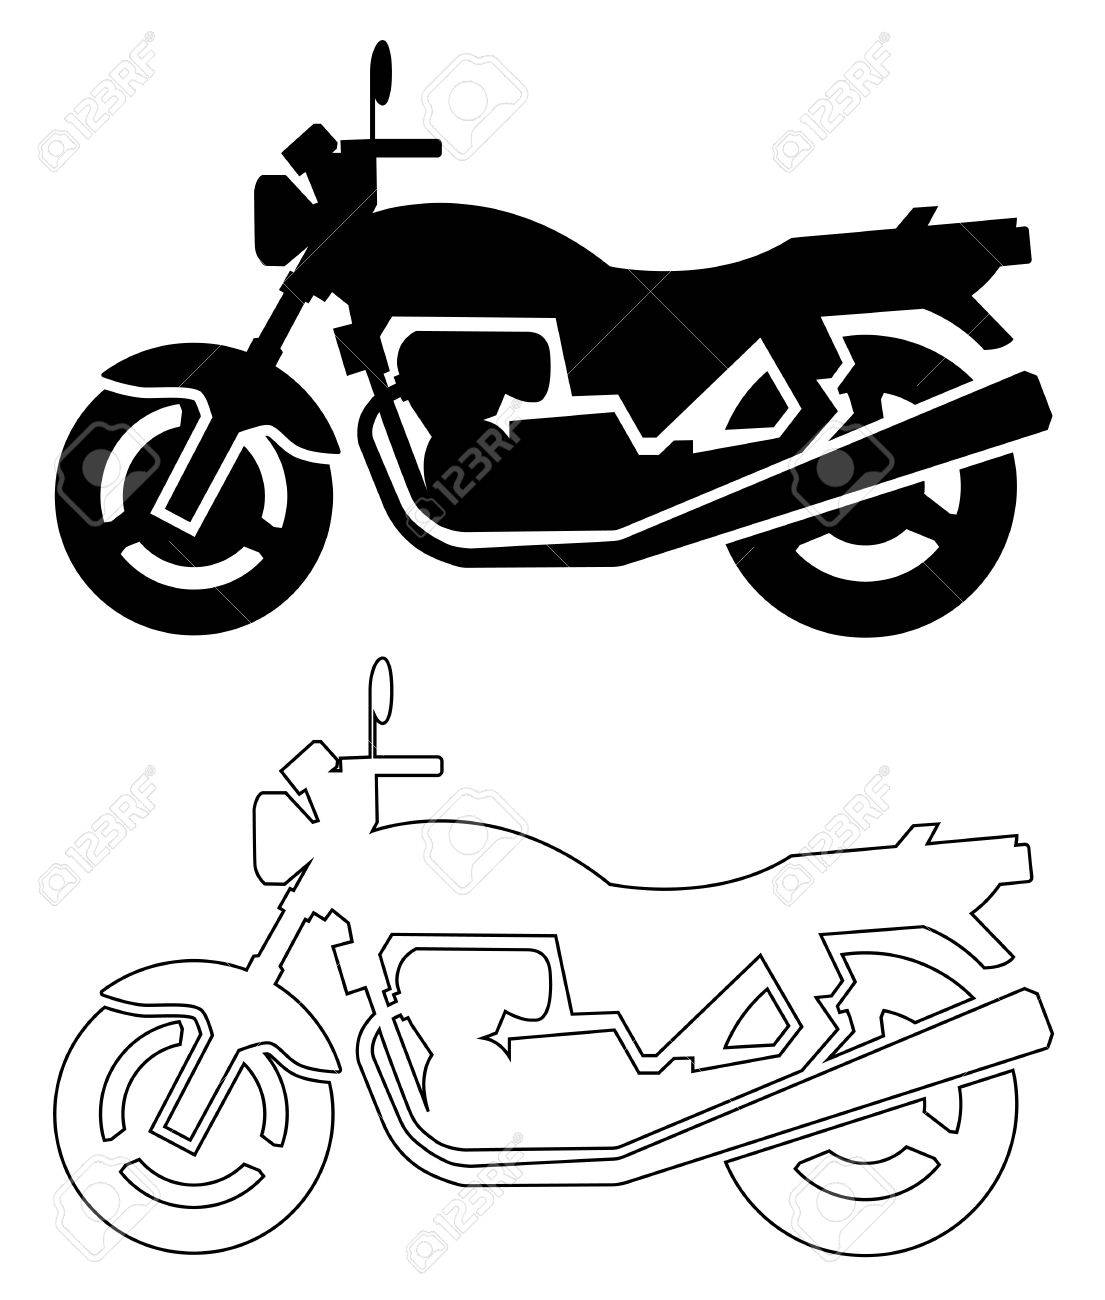 silhouette of motorcycle black and line - 54015960